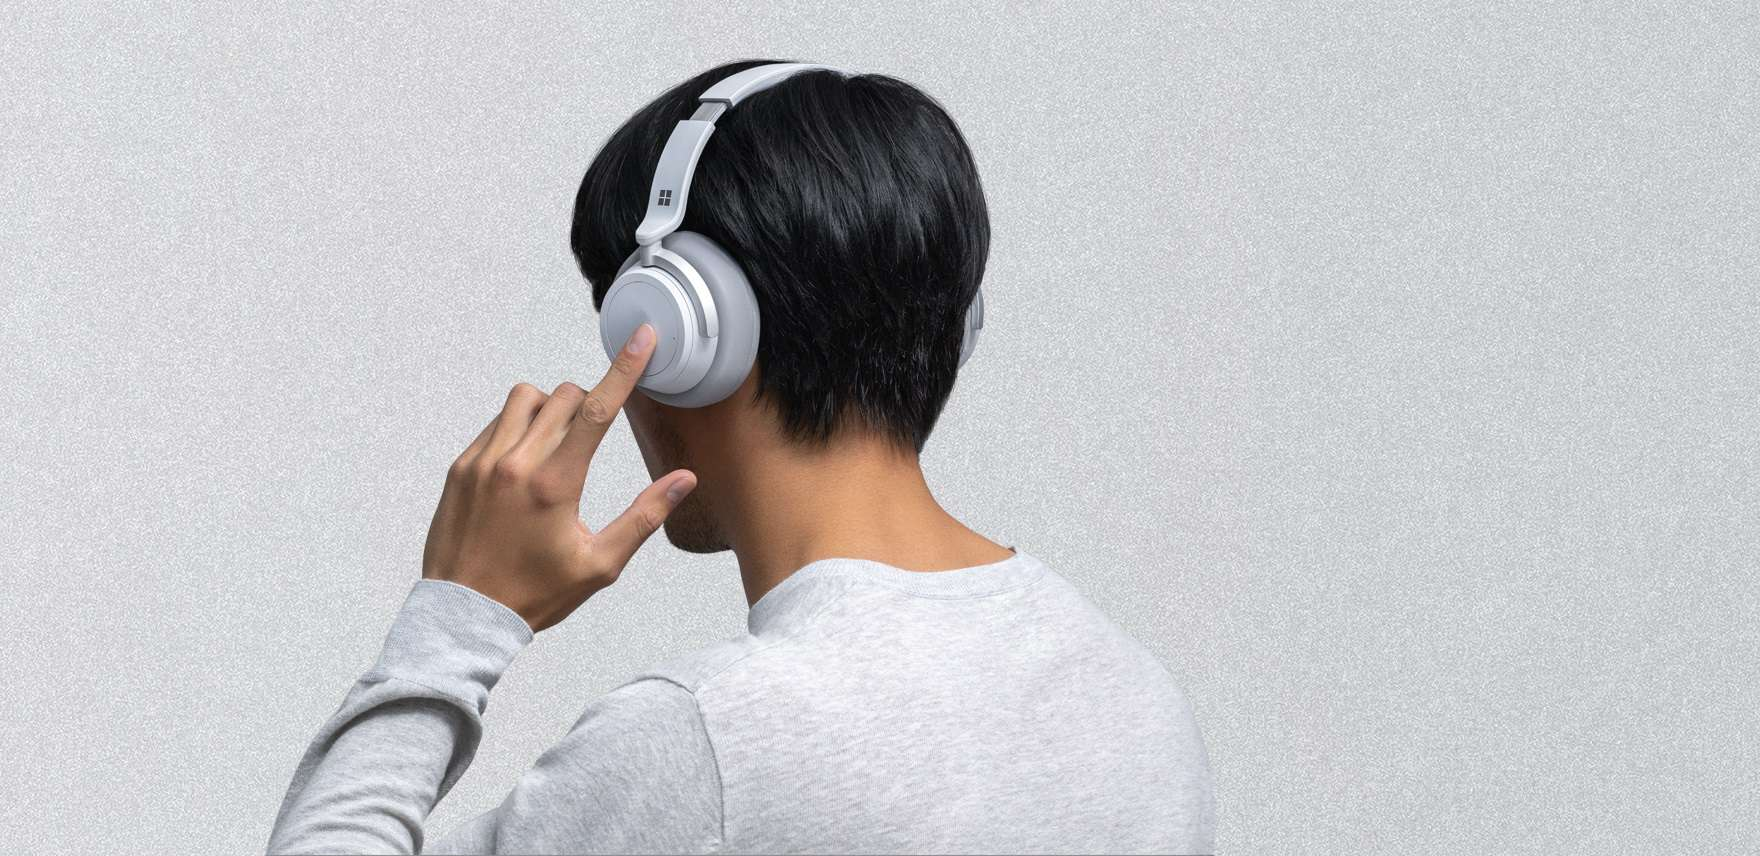 How Headphones And Ear Buds Can Damage Hearing Gradually Over Time?